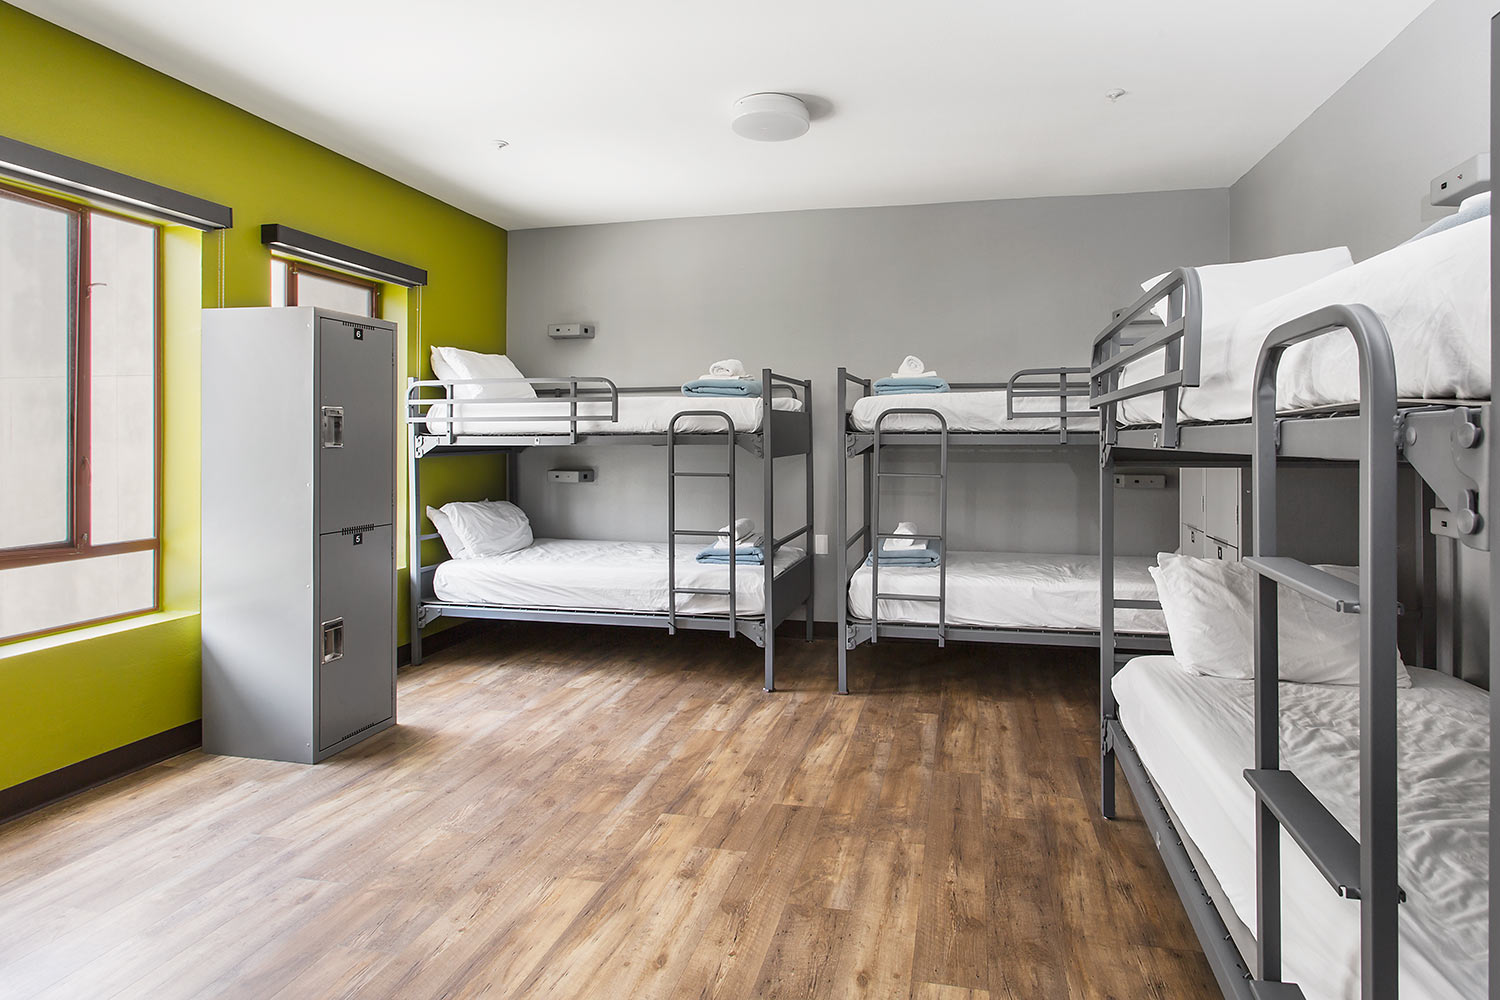 Room View with bunk beds